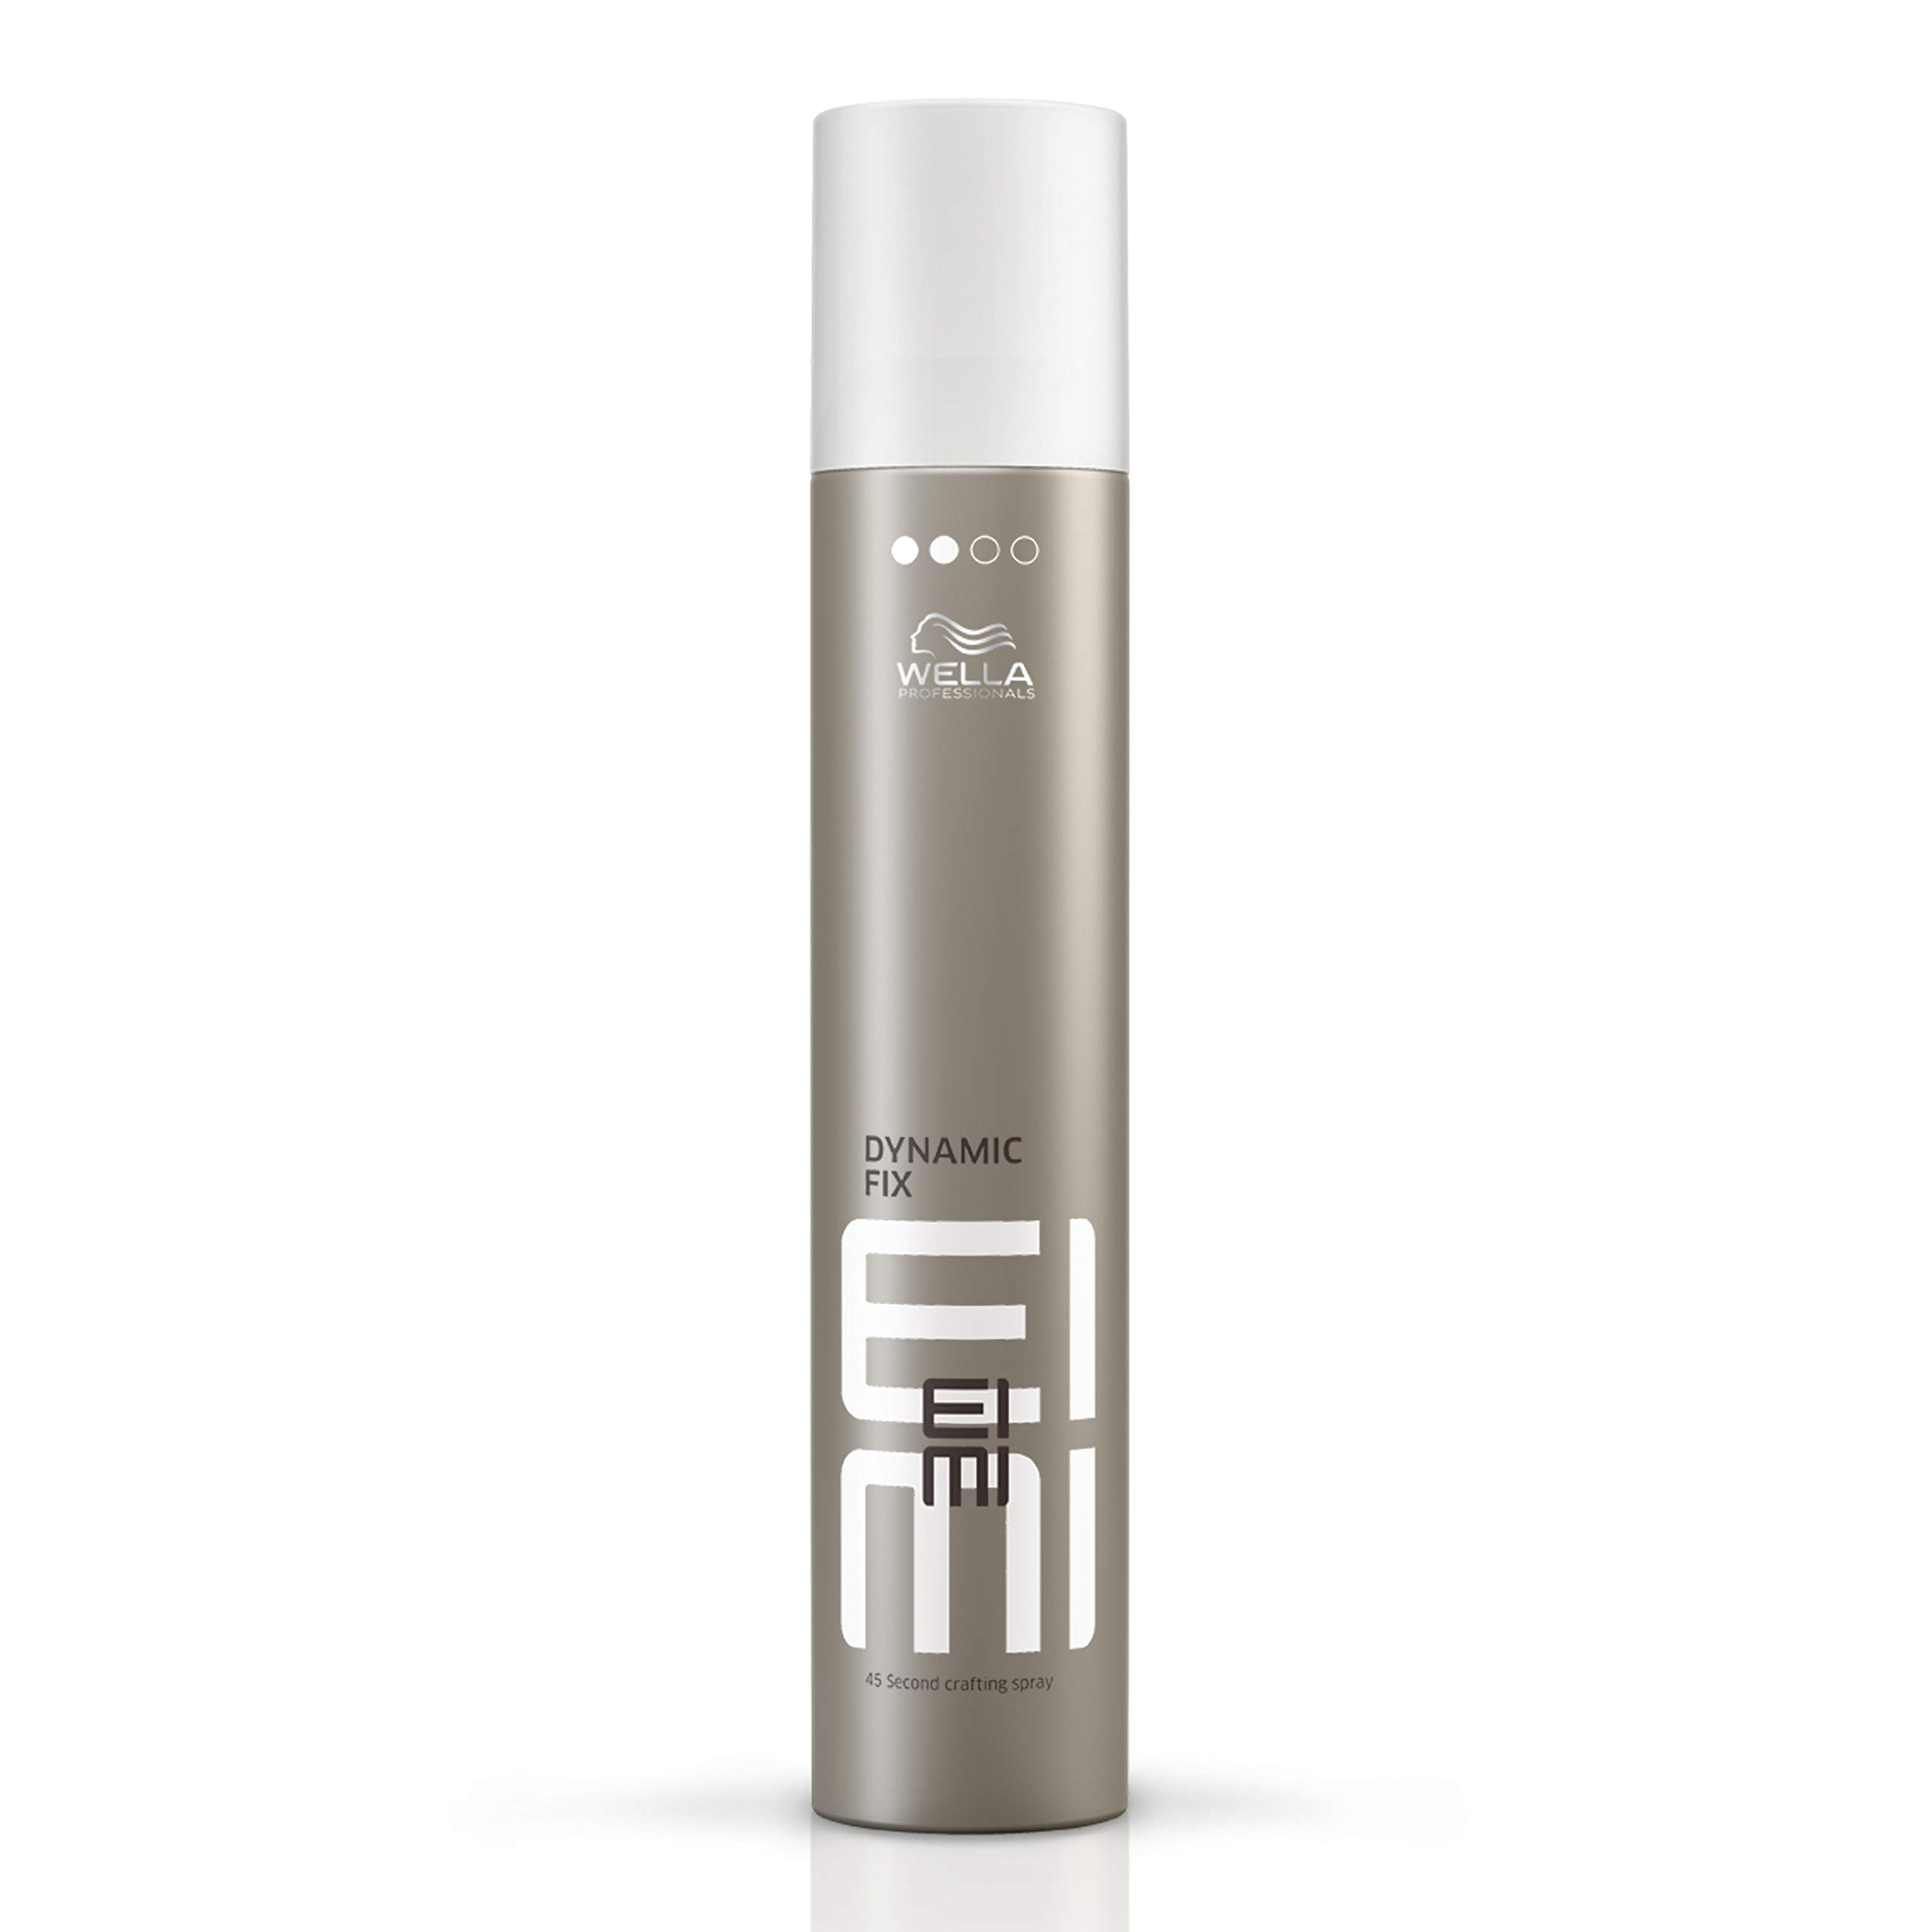 Wella Eimi Moisture Me Rich - Laca, 300 ml product image